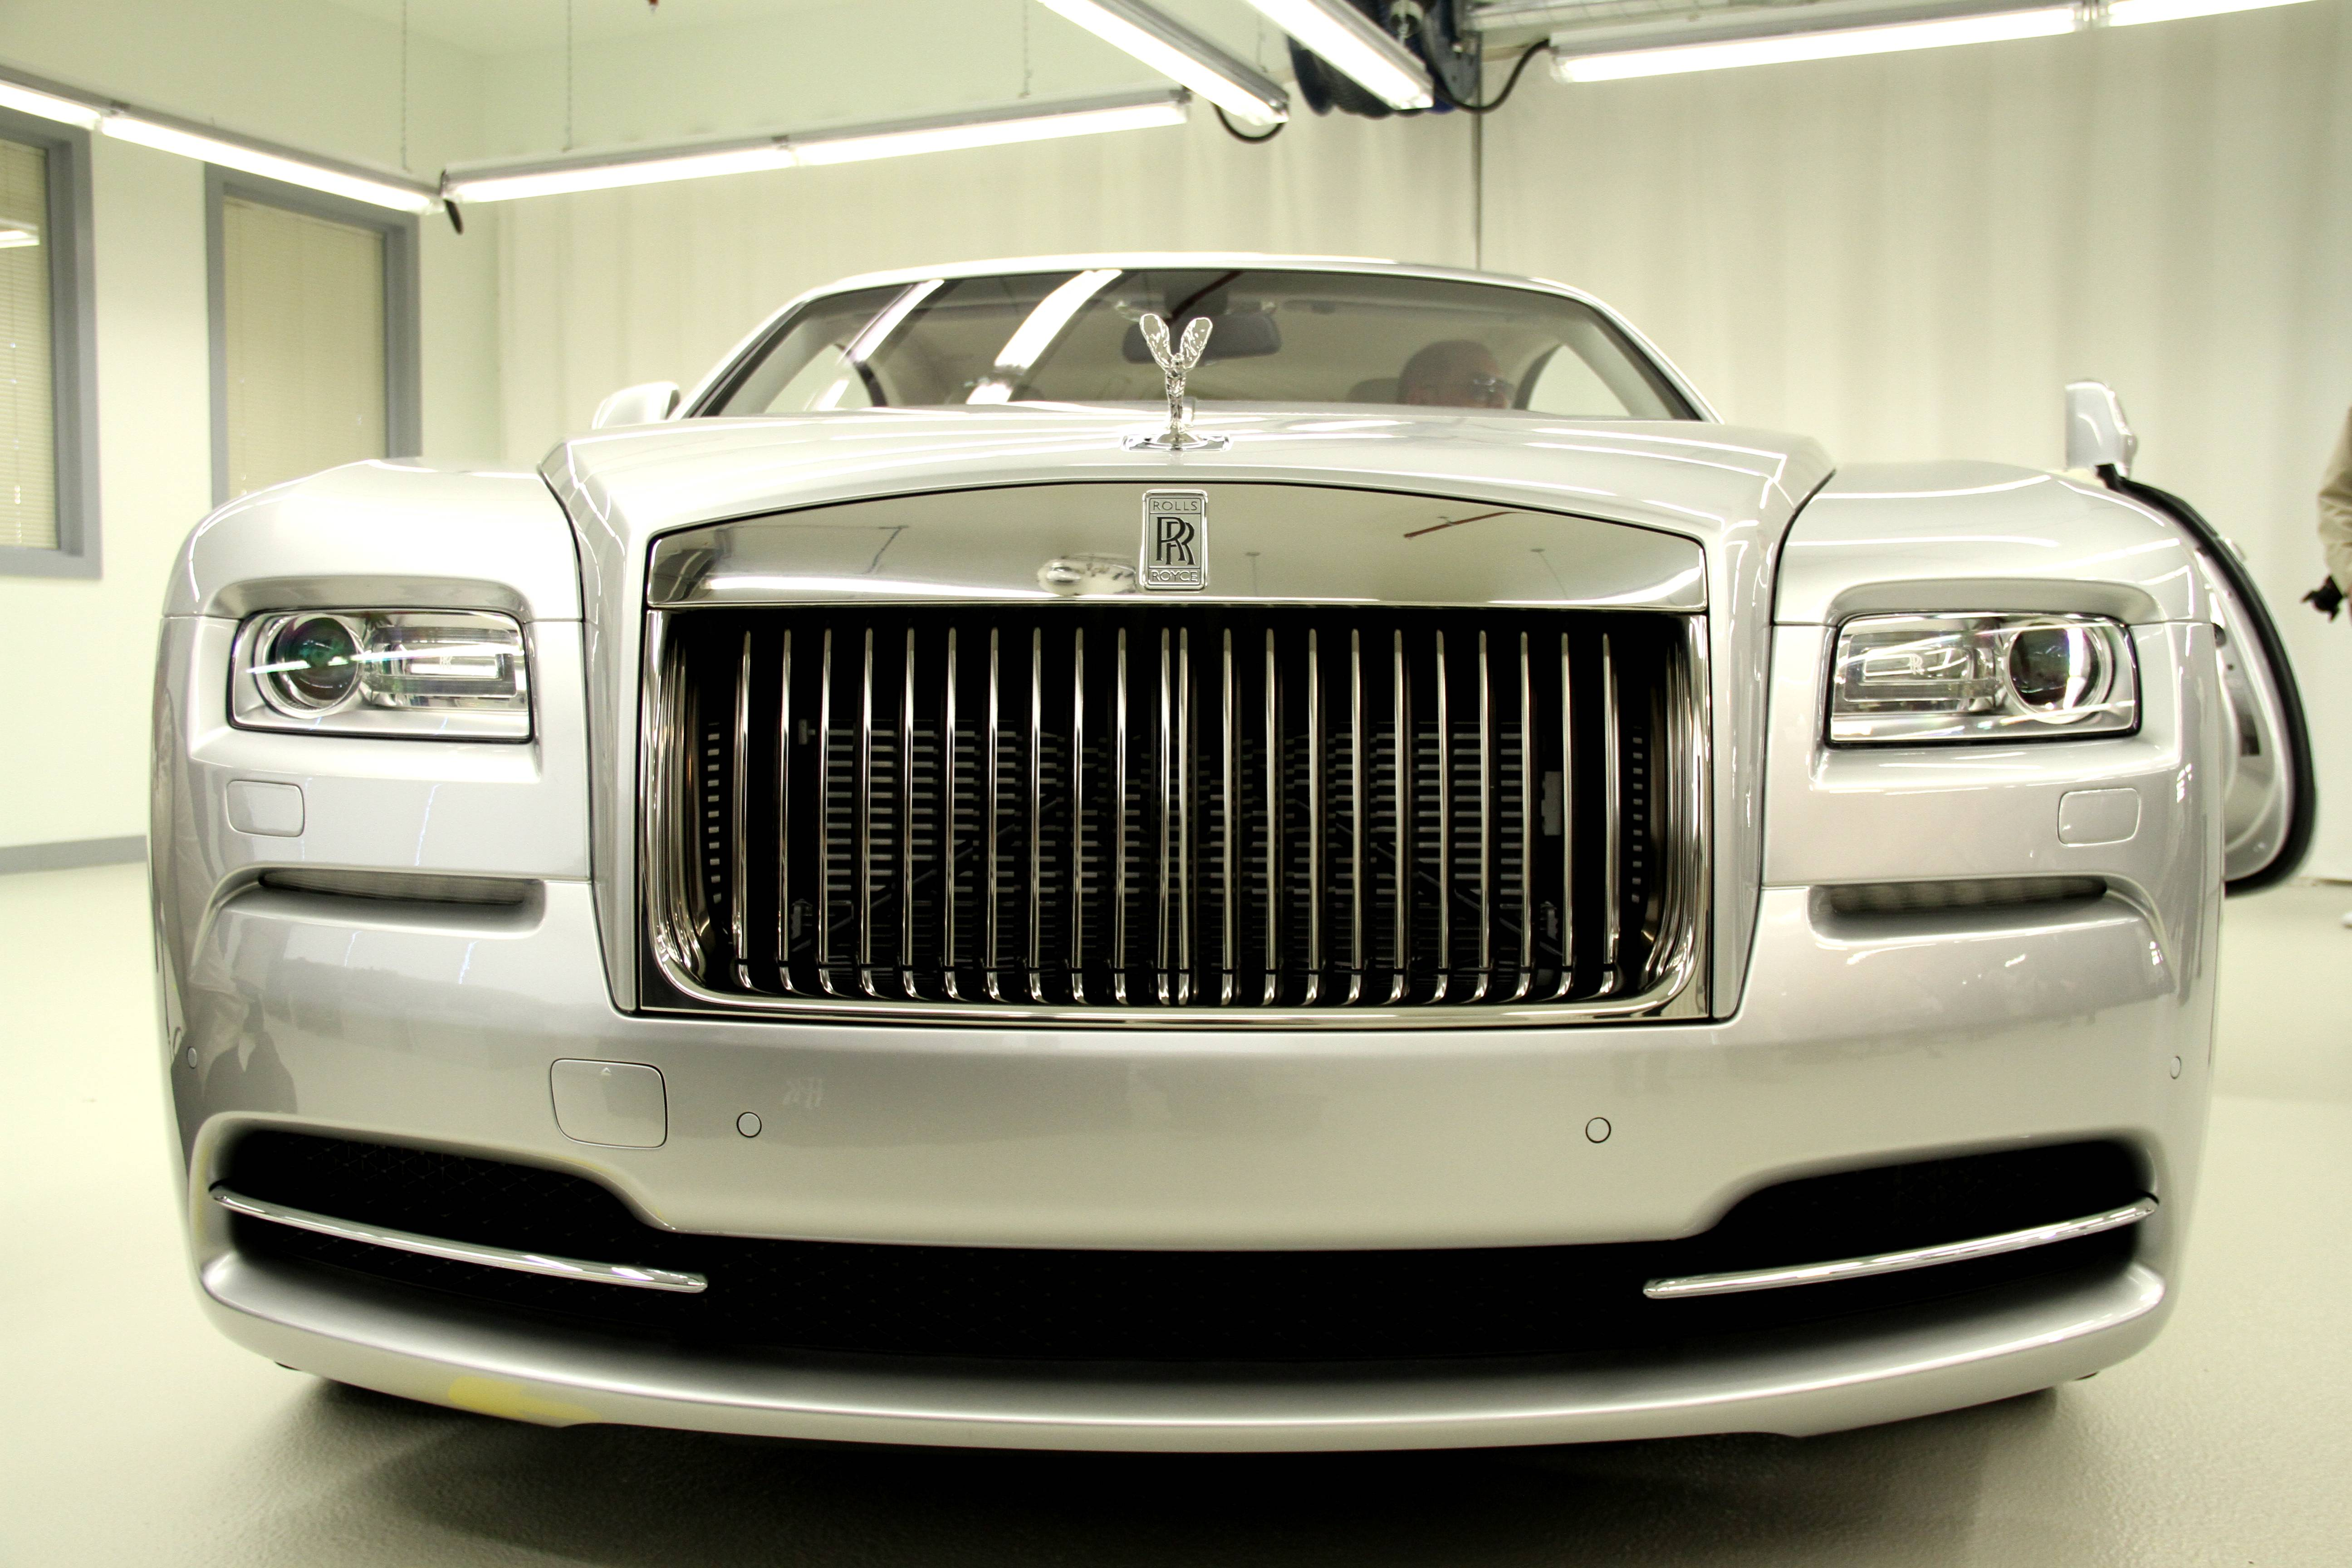 Rolls Royce Wraith Front Grille